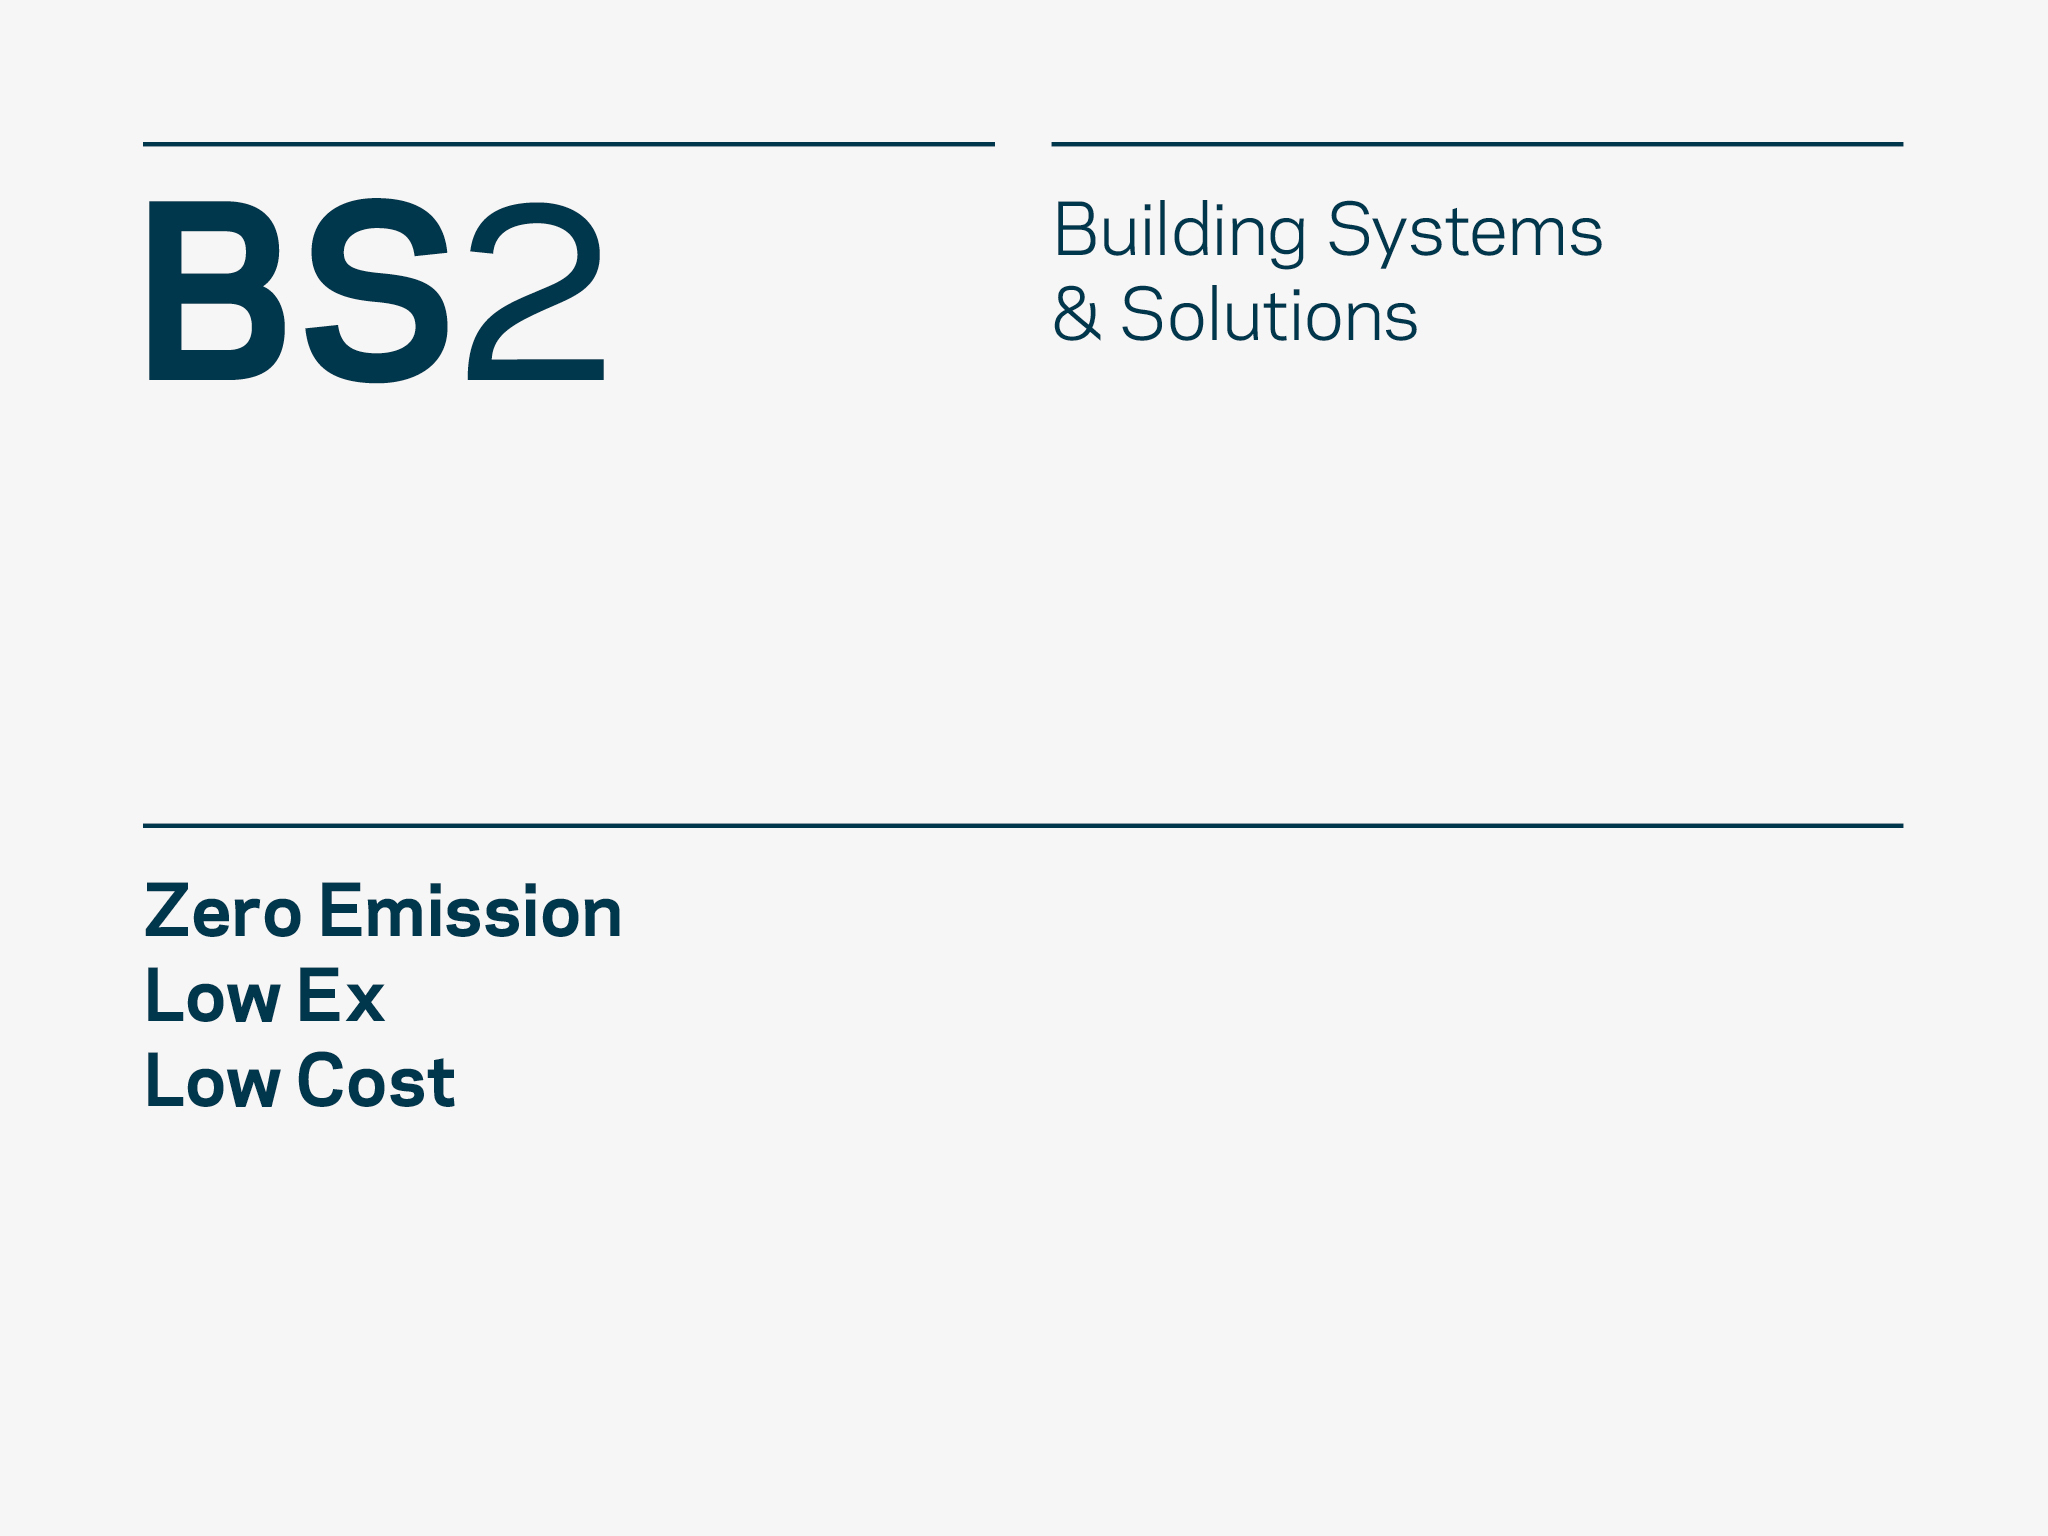 BS2 – Building Systems and Solutions